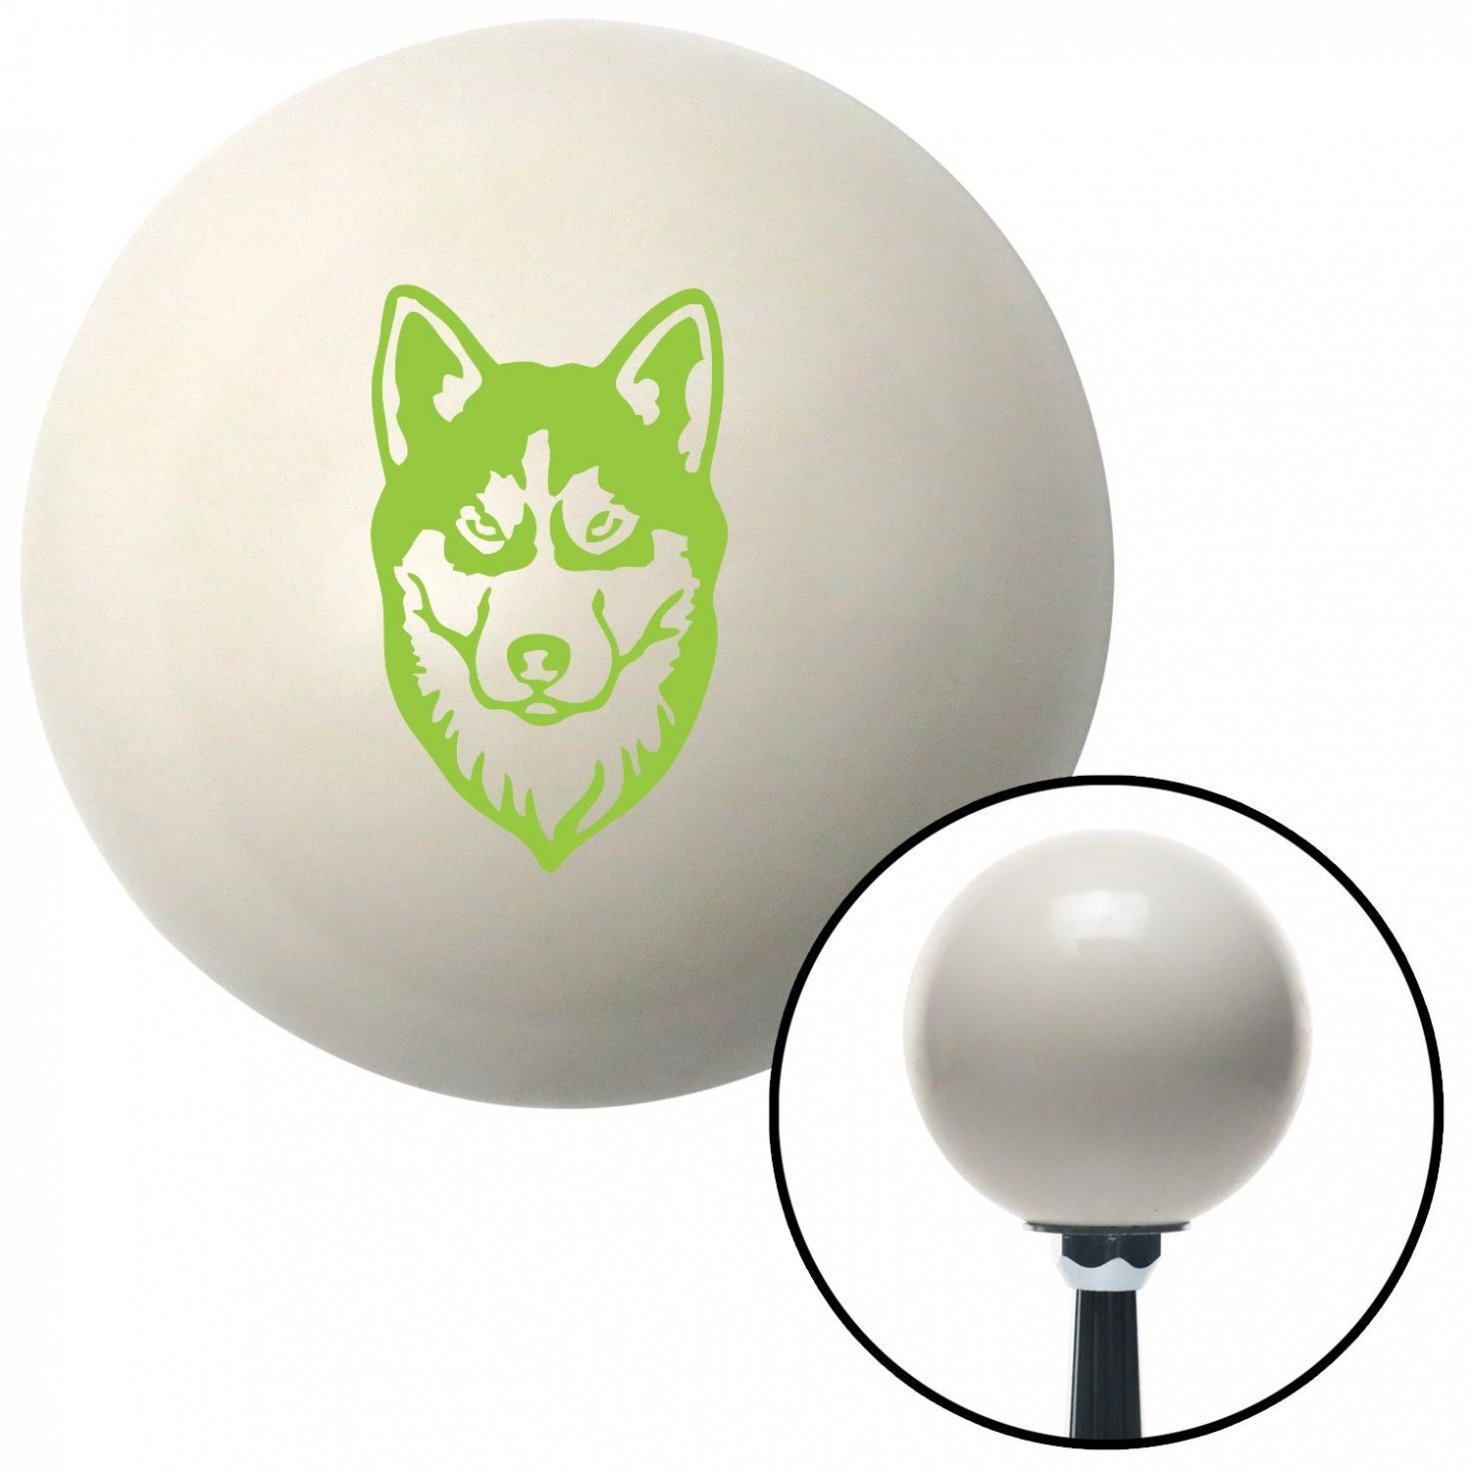 American Shifter 41131 Ivory Shift Knob with 16mm x 1.5 Insert Green Husky